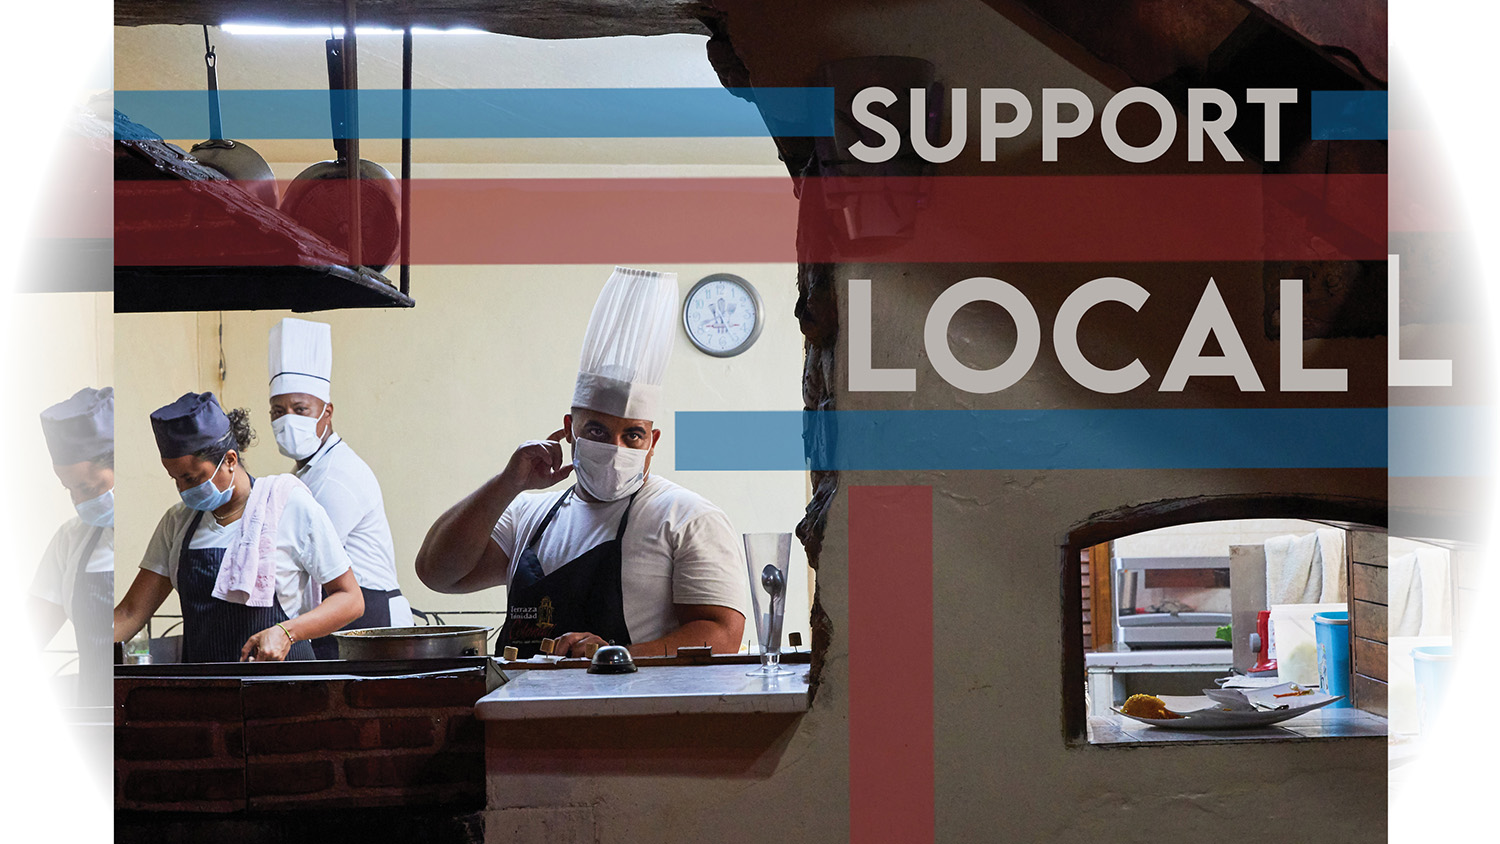 A poster promoting supporting local businesses with a photo of restaurant workers.